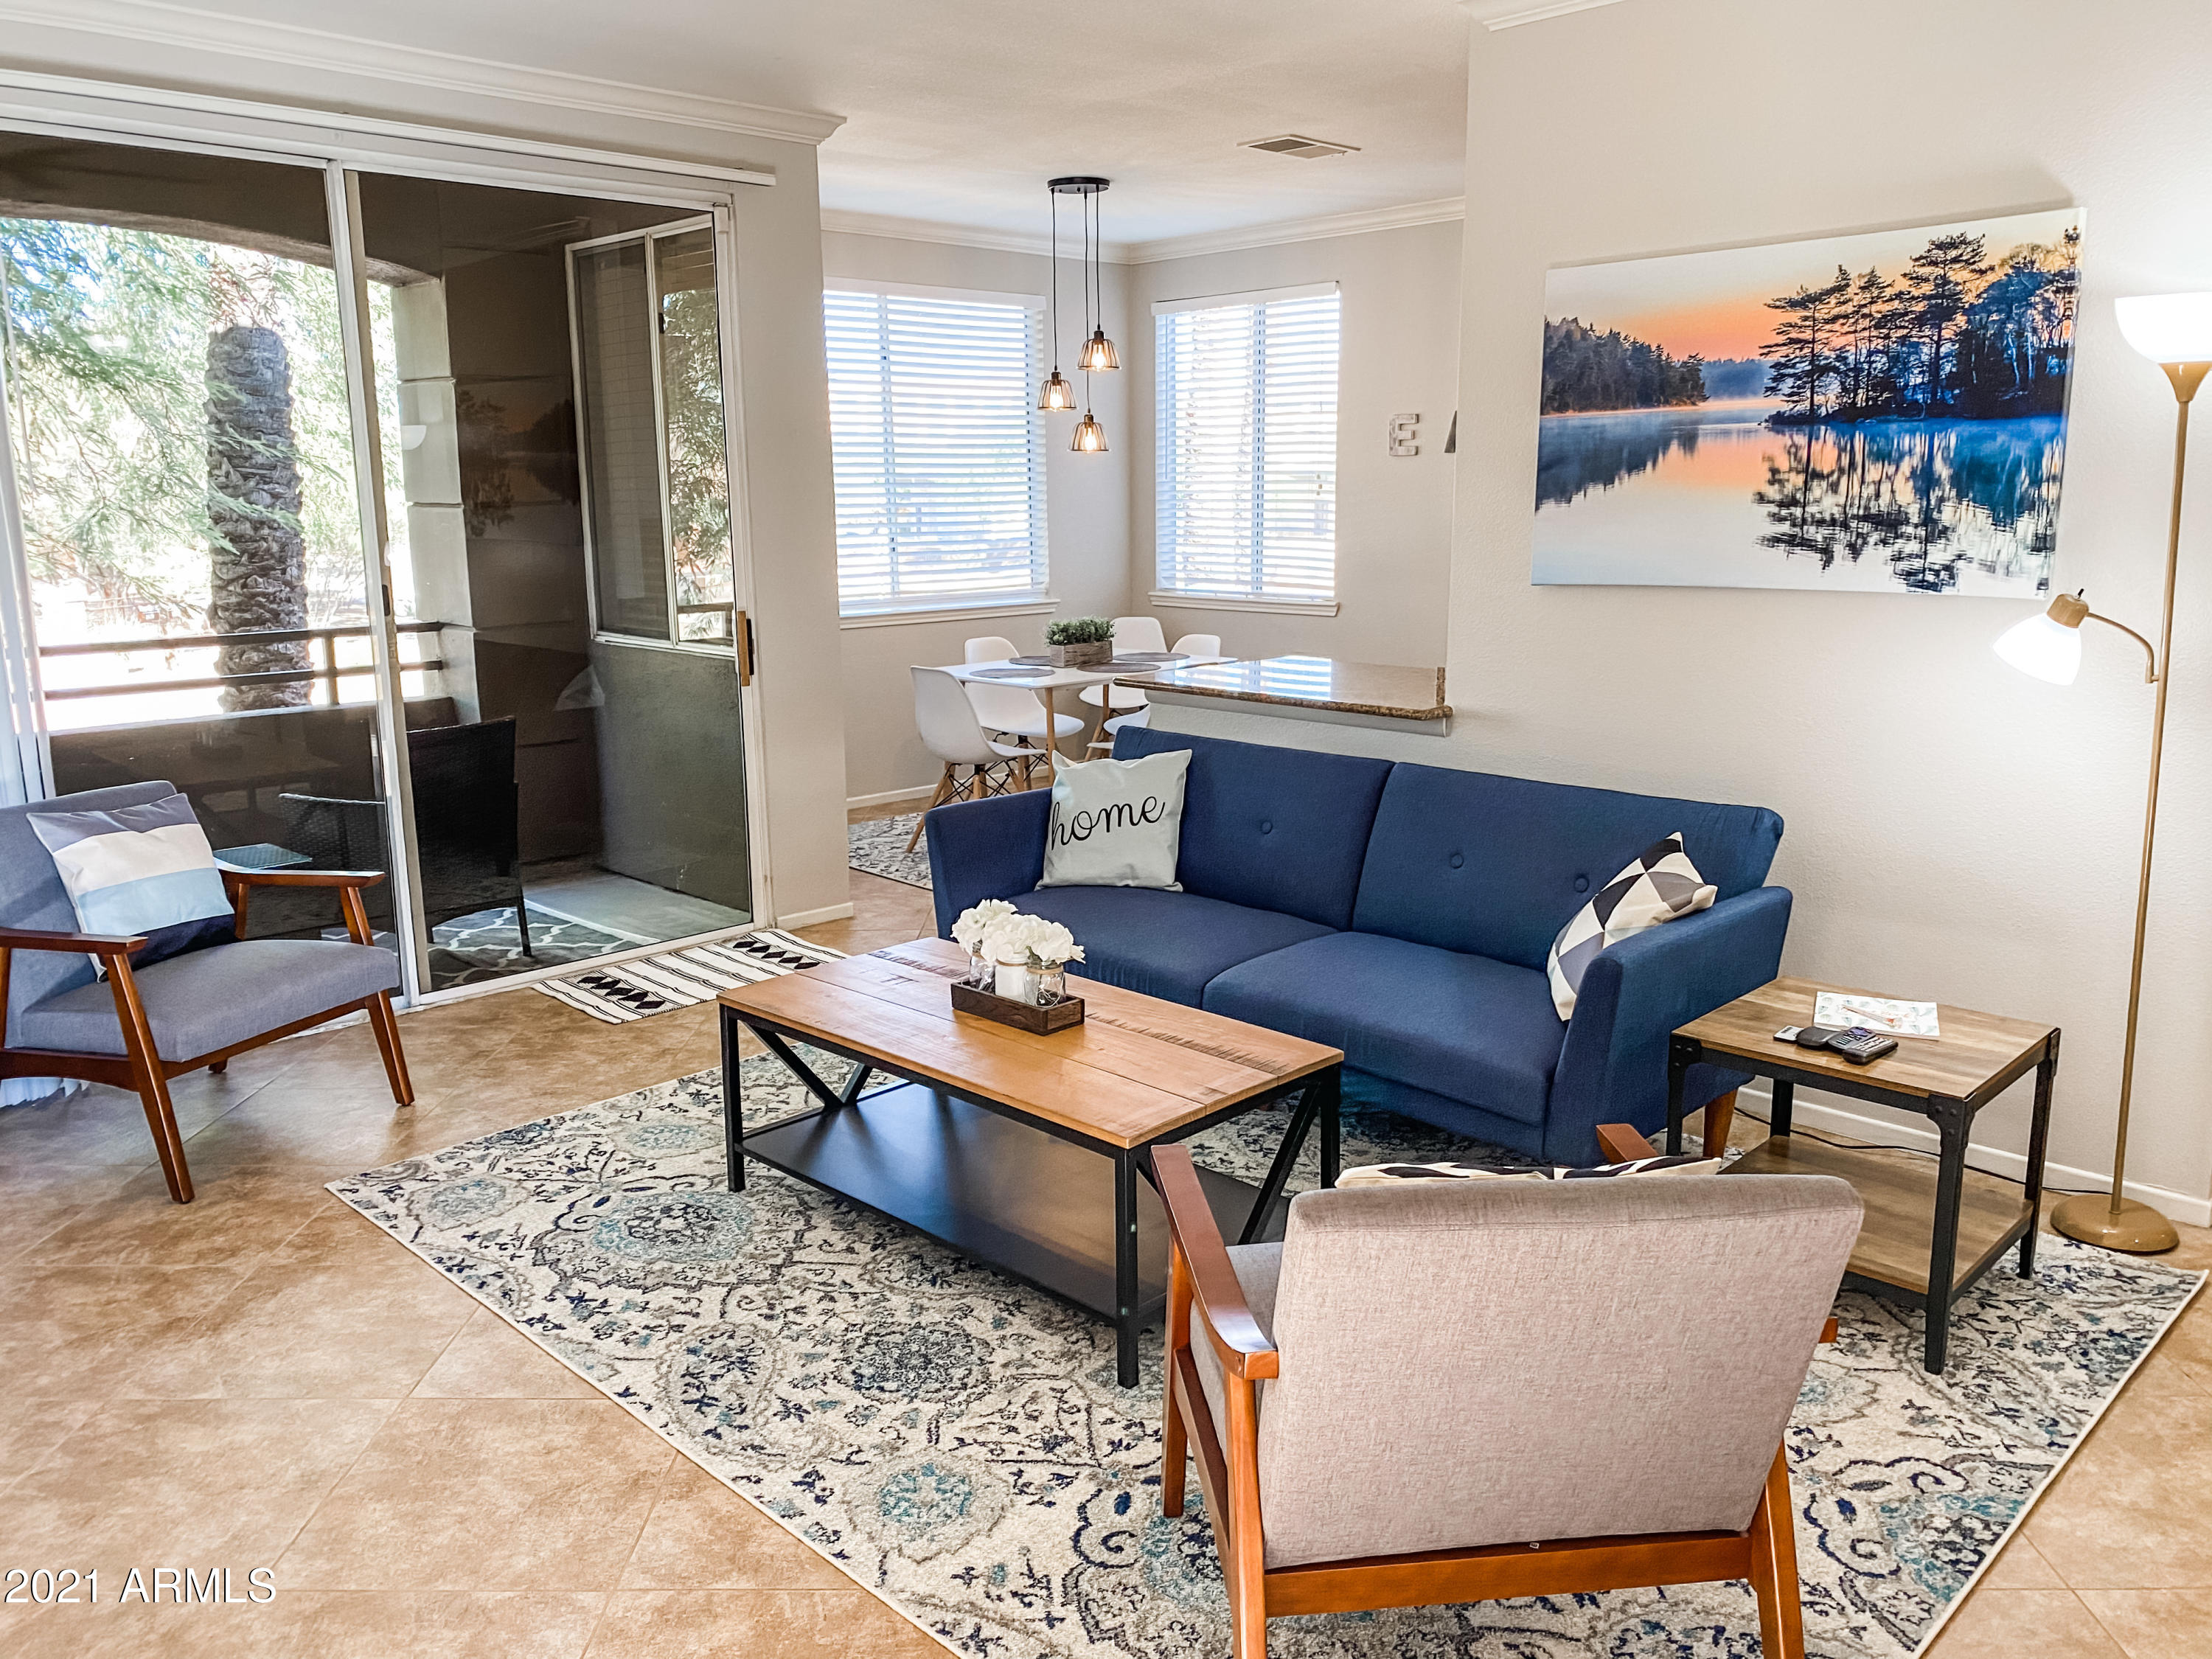 7009 E Acoma Drive # 2002, Scottsdale, AZ 85254, 2 Bedrooms Bedrooms, ,Residential Lease,For Rent,7009 E Acoma Drive # 2002,6260483